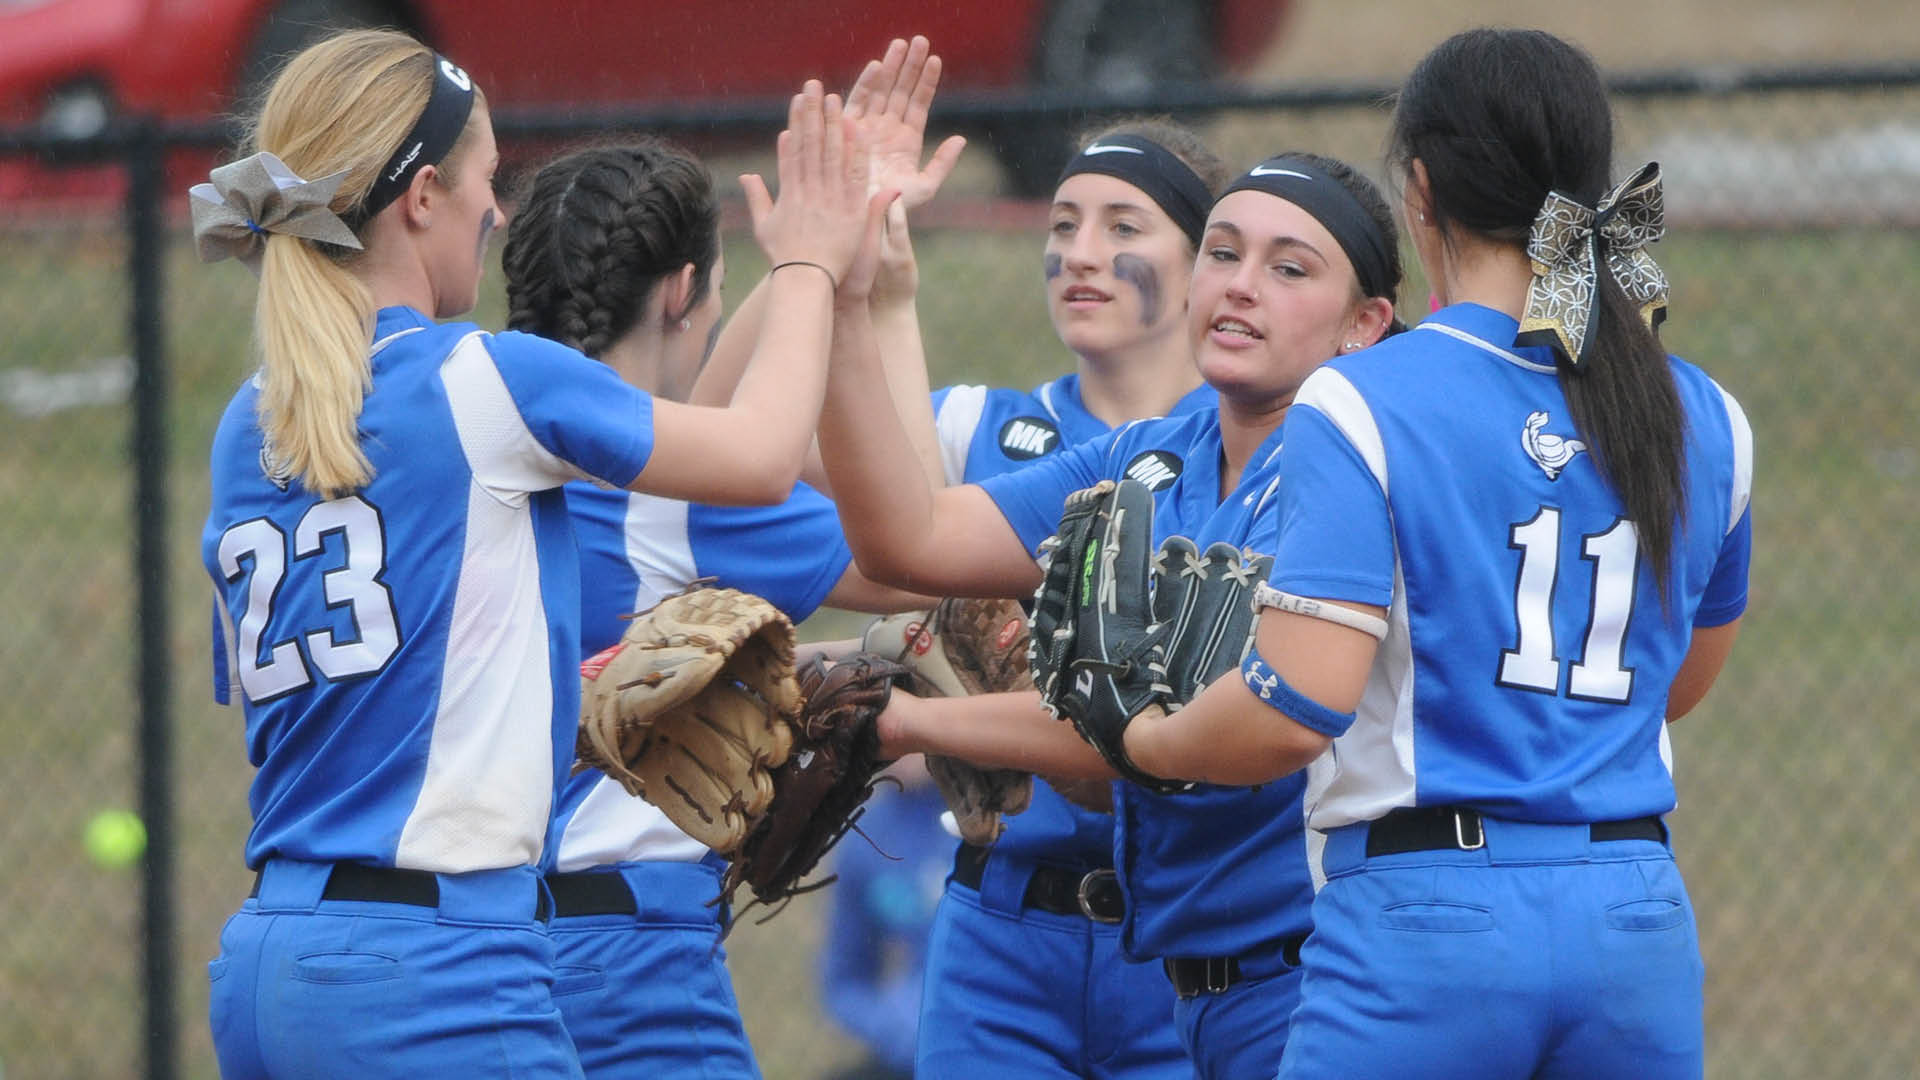 7fea3d34e0a Cavaliers Announce 2018 Softball Schedule - Cabrini University Athletics